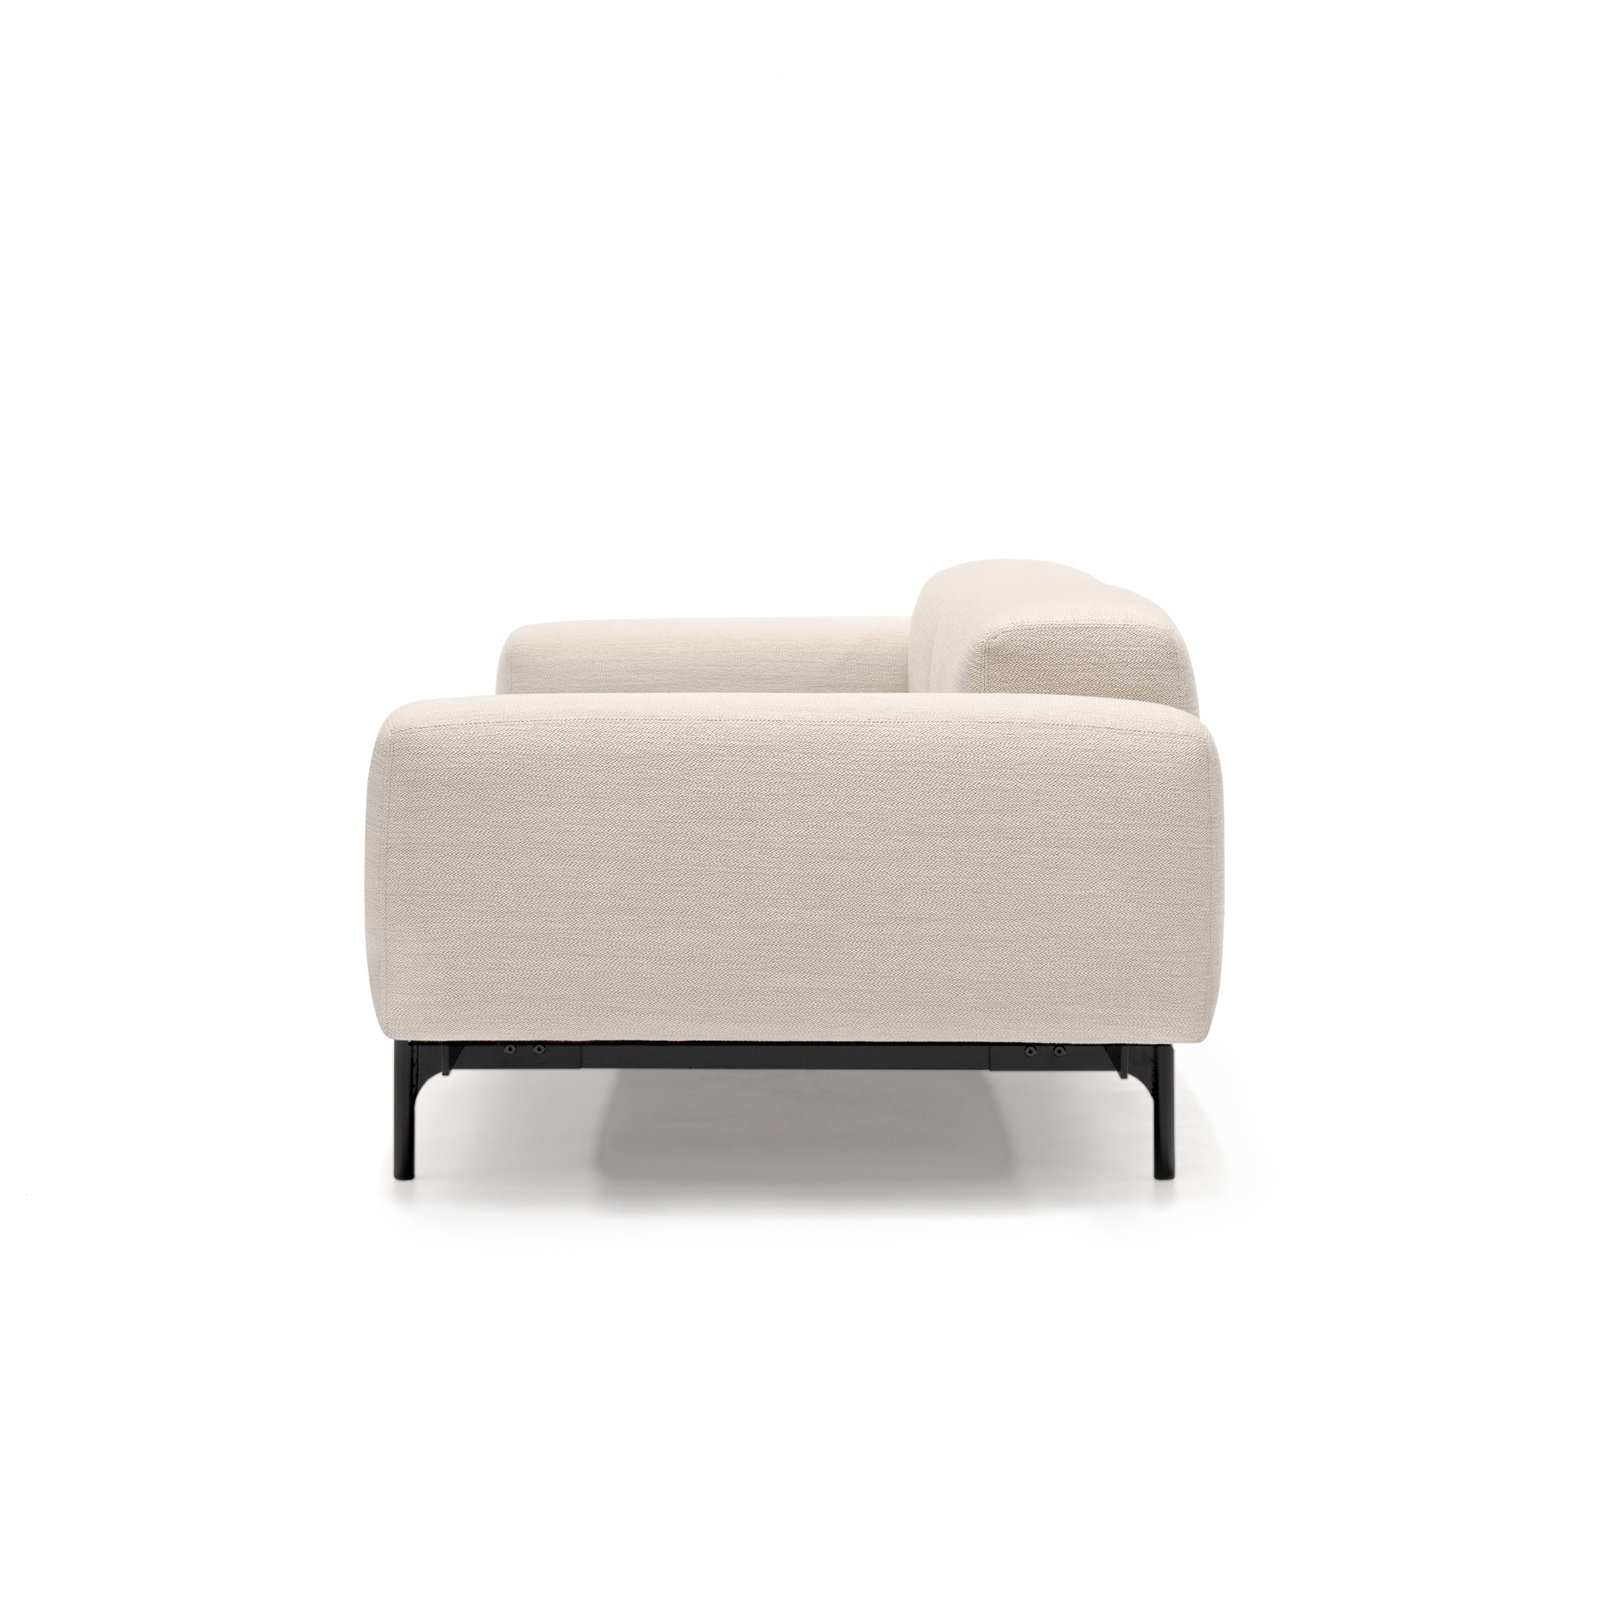 Permanent Future Perry Sofa 2.5 Seater Pure Pumice Pf Sf Pr 2.5 Pp Side View